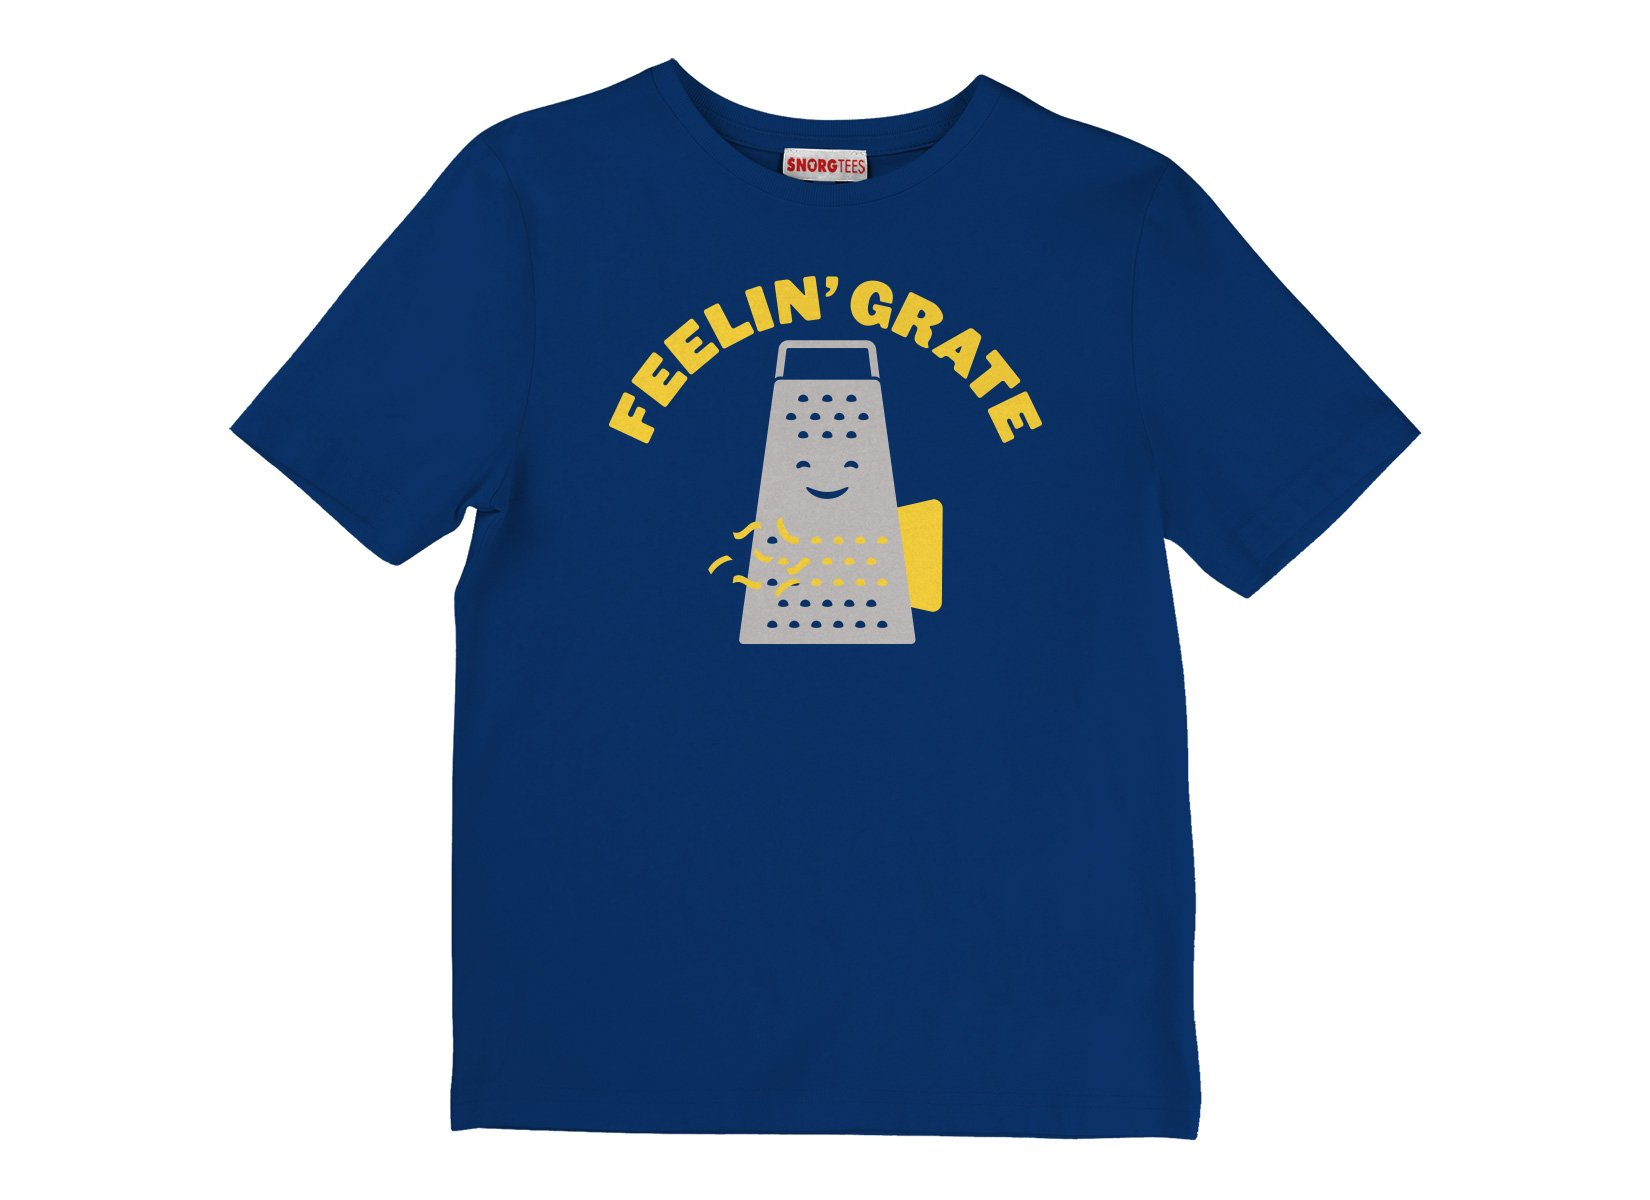 Feelin' Grate on Kids T-Shirt